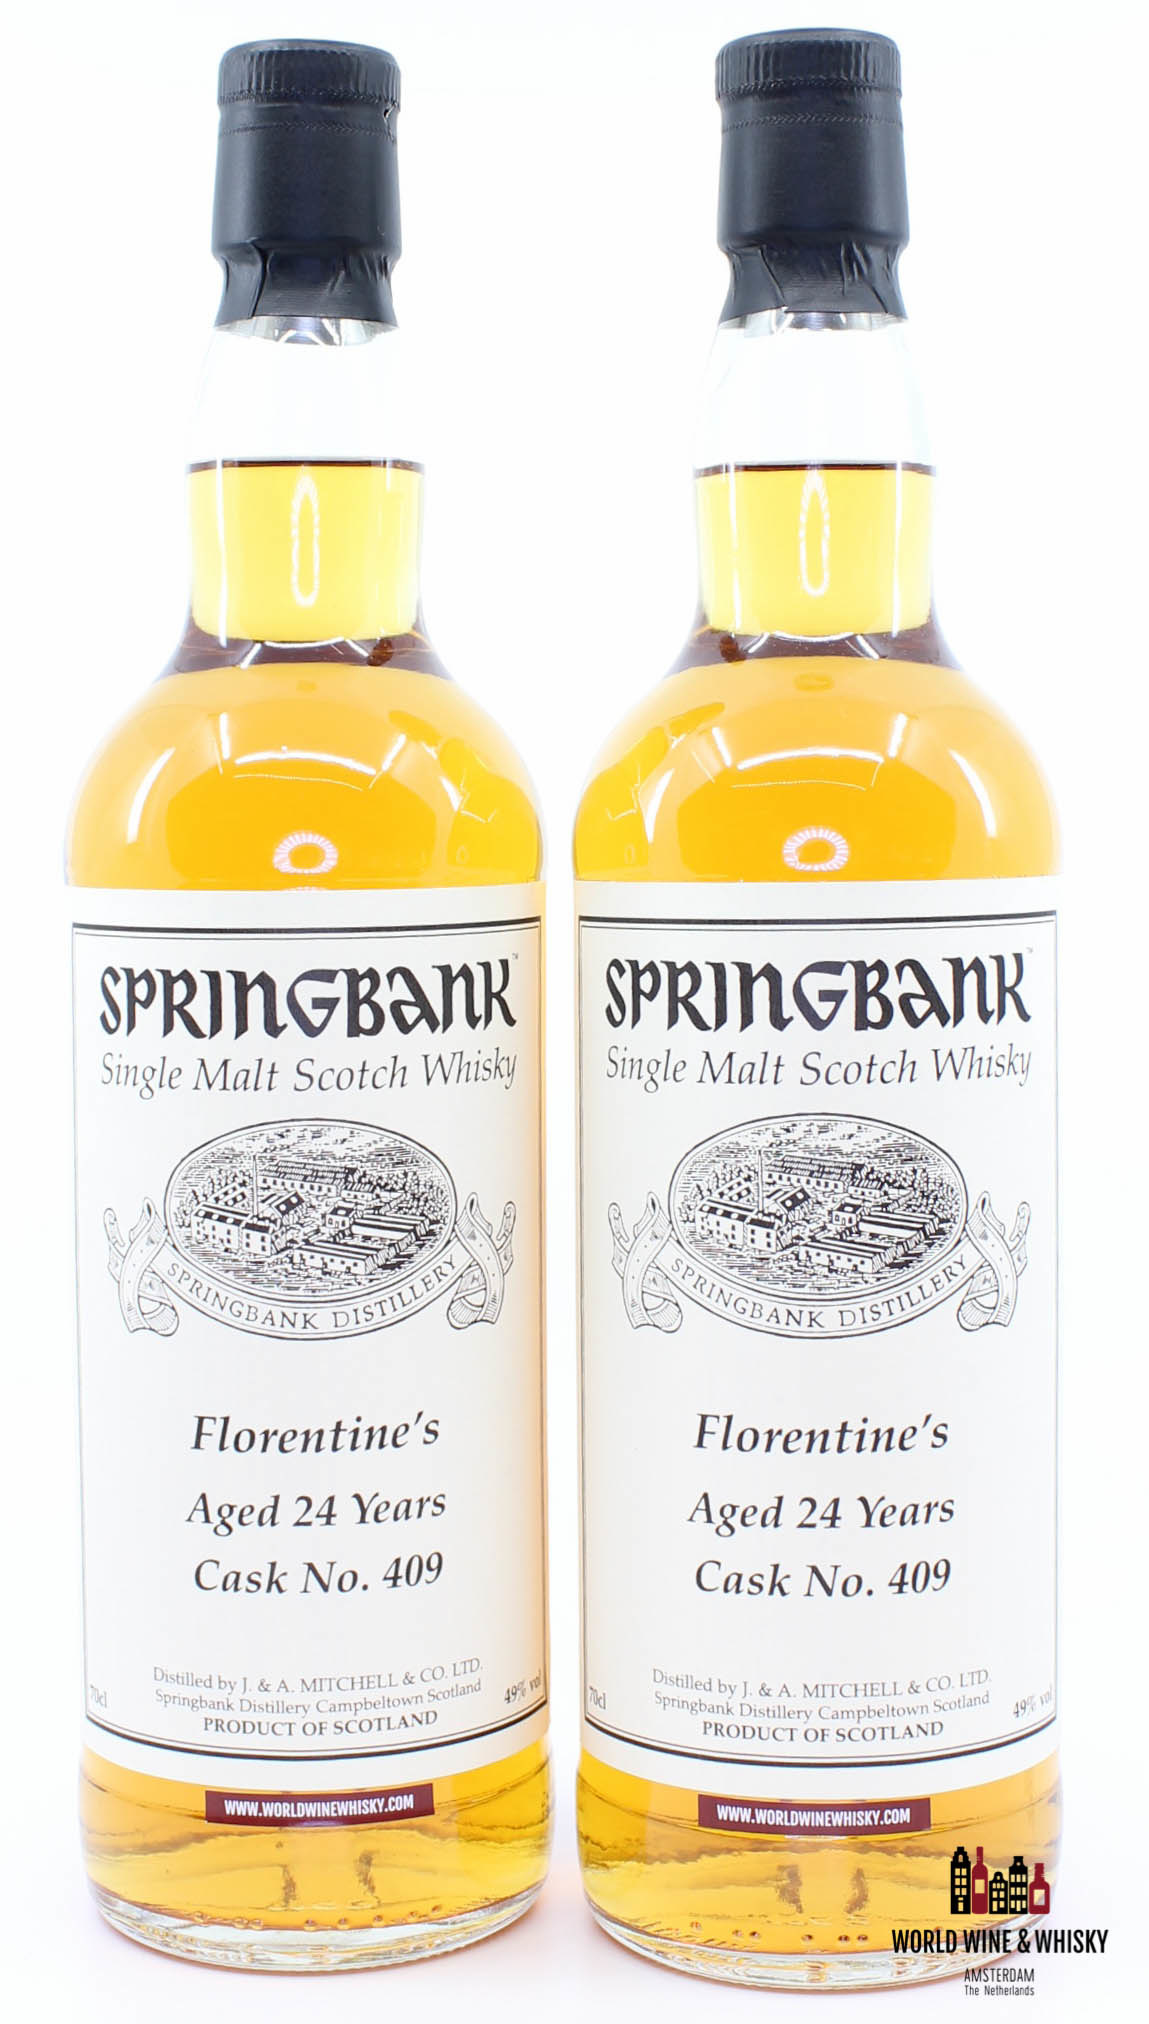 Springbank Springbank 24 Years Old 1993 2017 Private Bottling Cask 409 Florentine's 49% - Twin deal